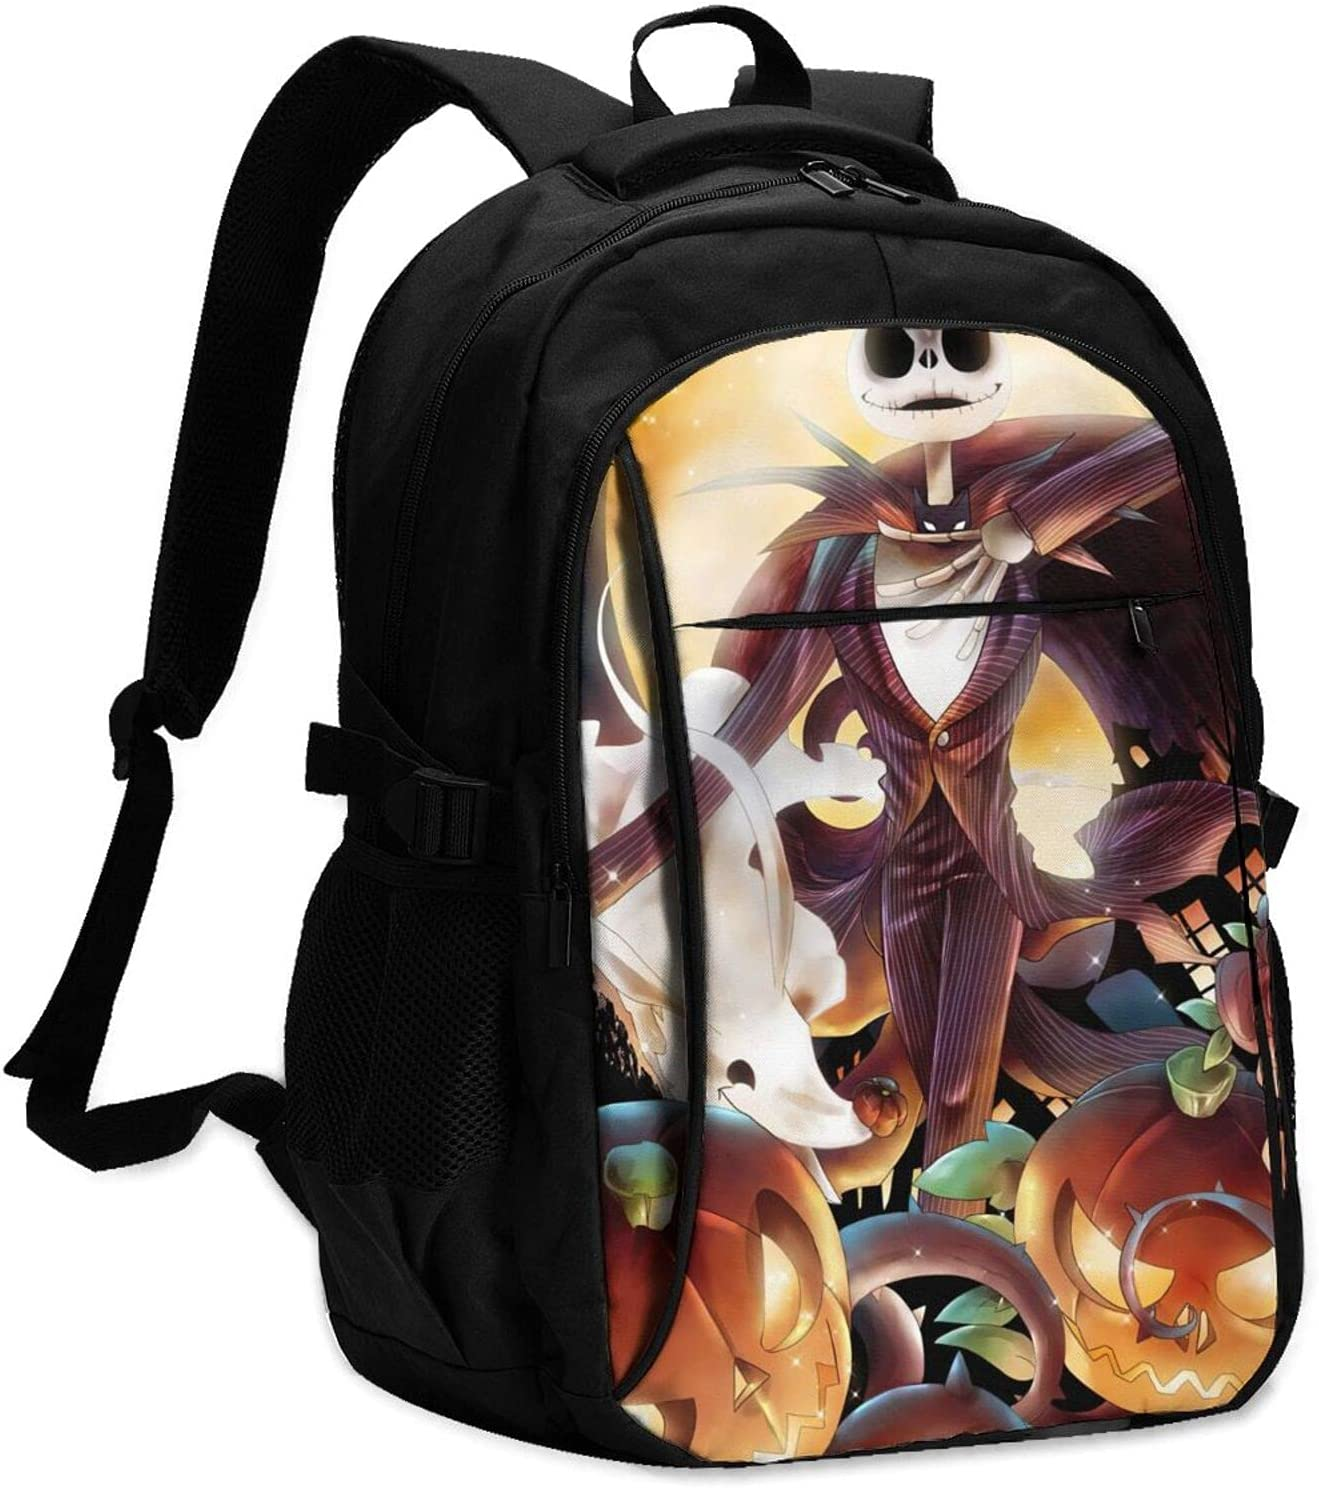 Multifunctional Laptop Backpack With OFFicial store Usb Charger Port K Teen We OFFer at cheap prices For